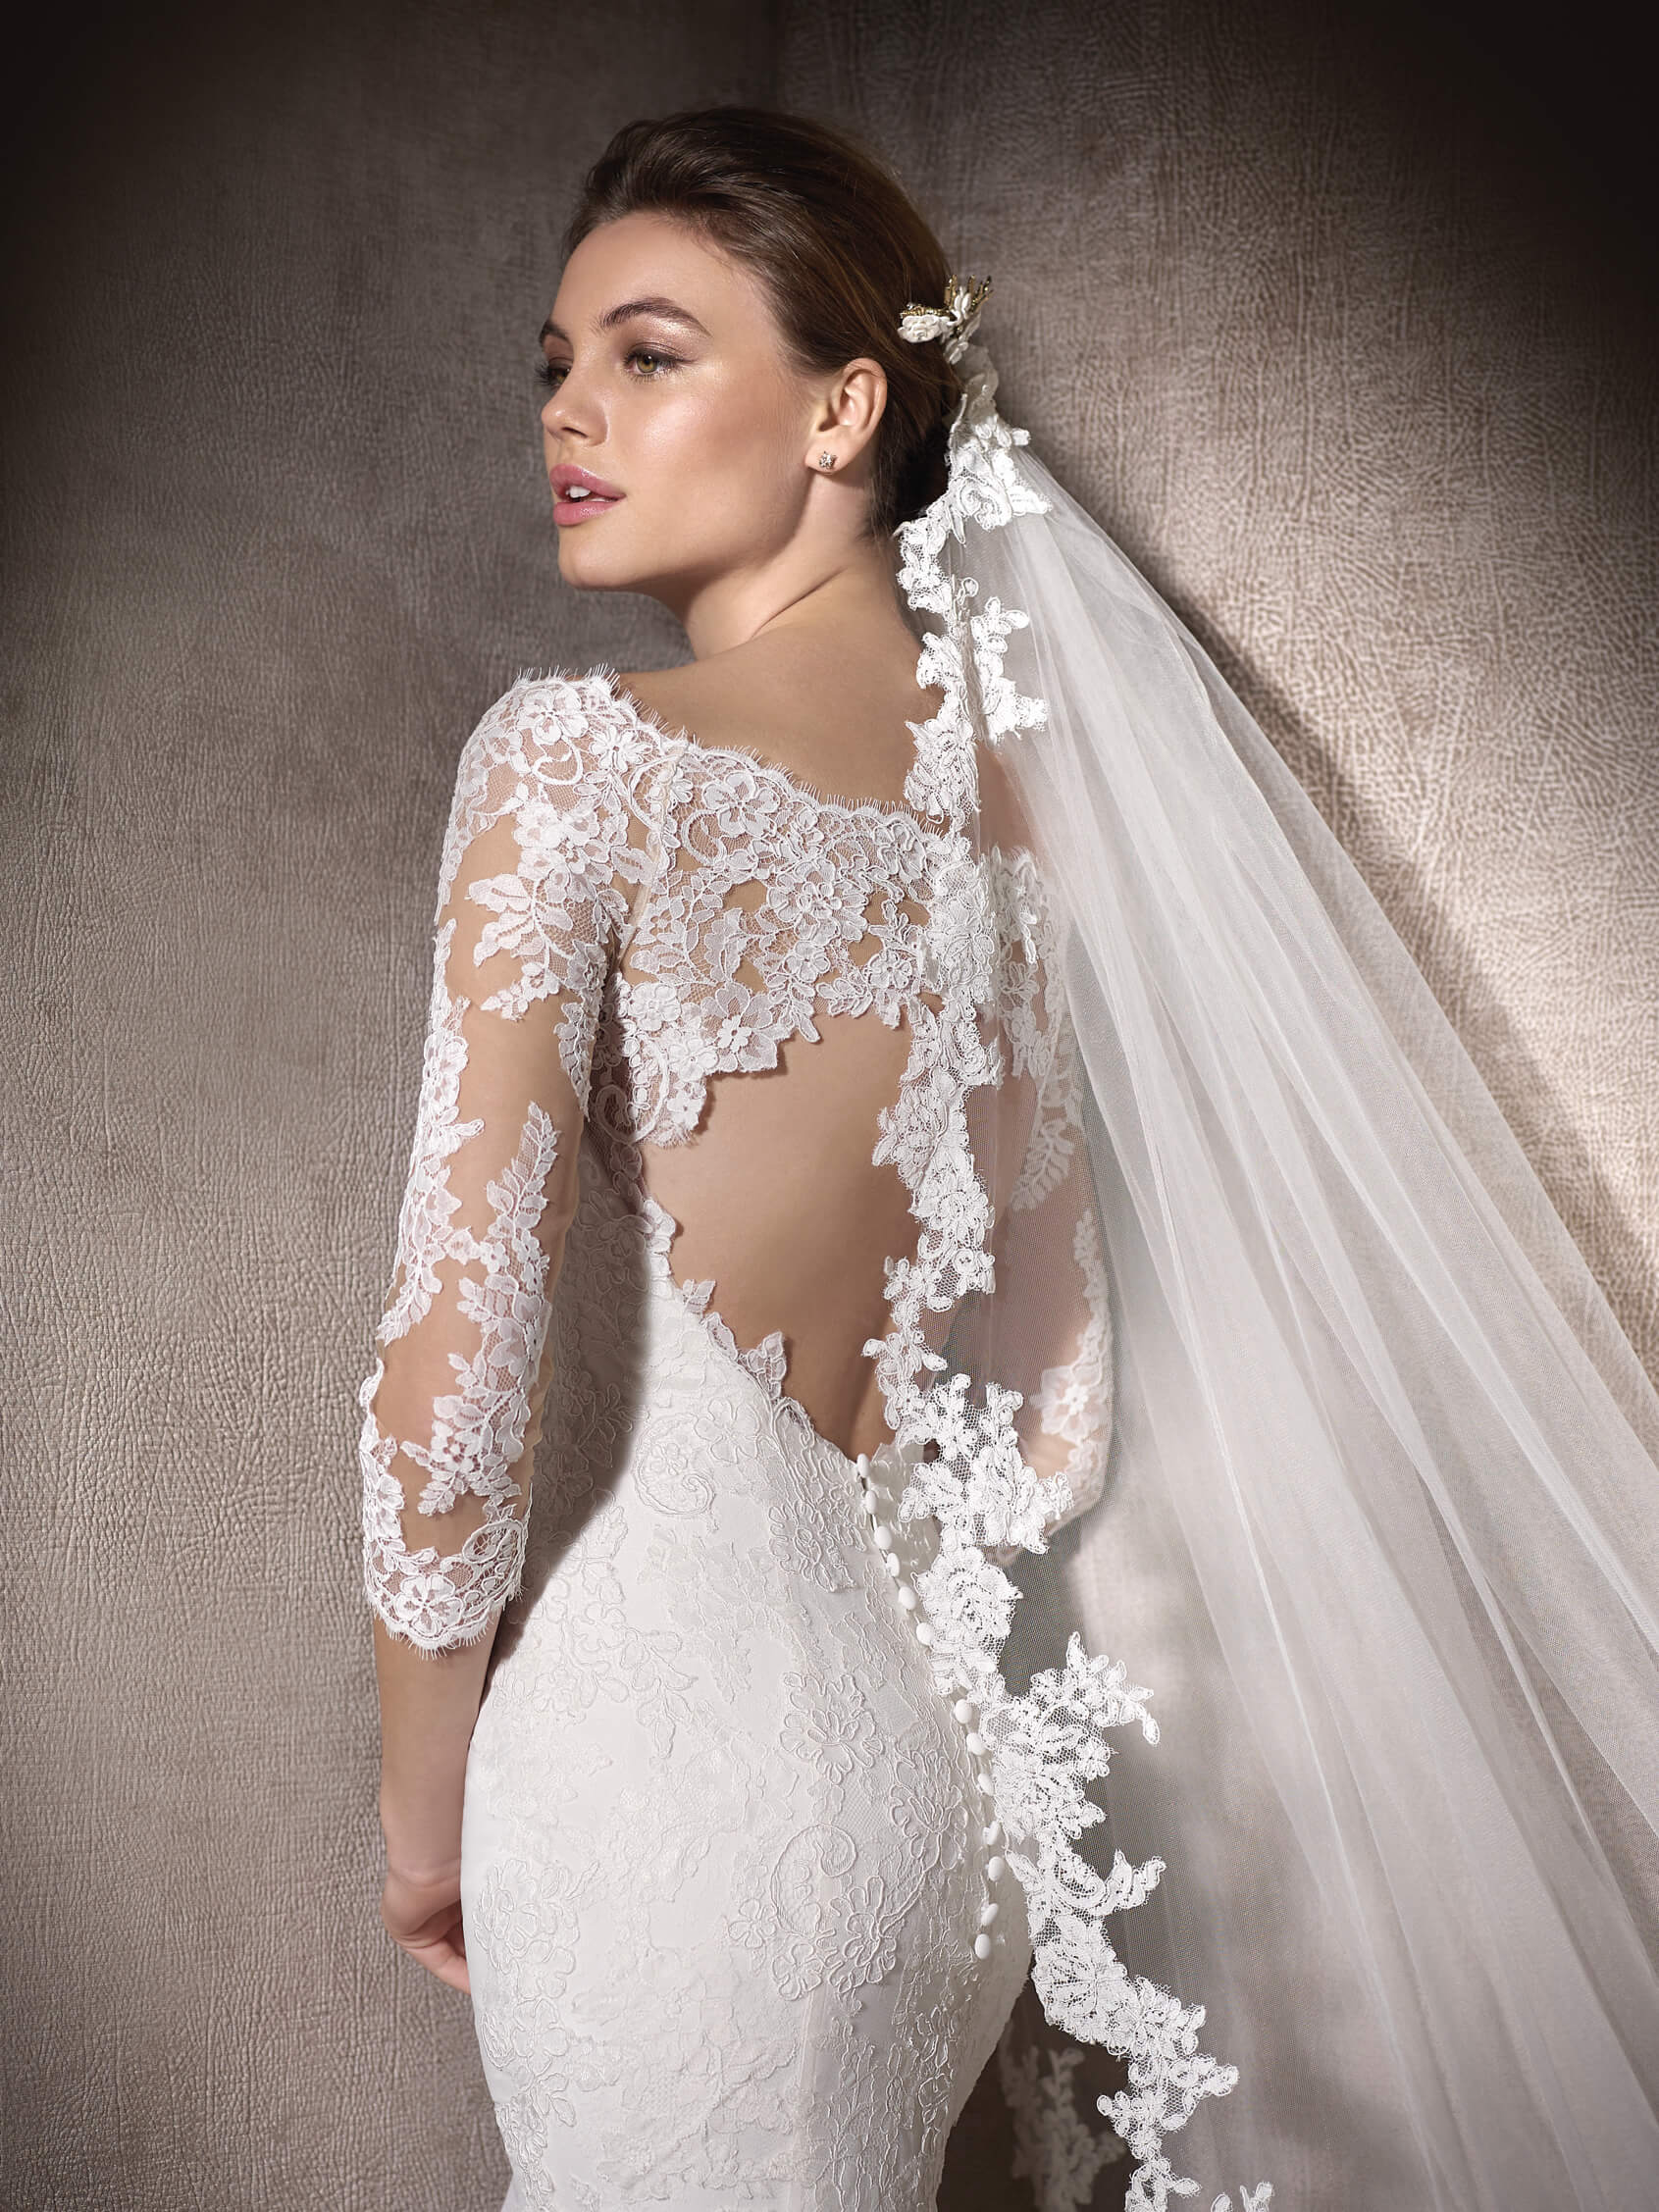 Pronovias - Veils and headpieces by Pronovias elegantly provide that soft finishing touch you are looking for.